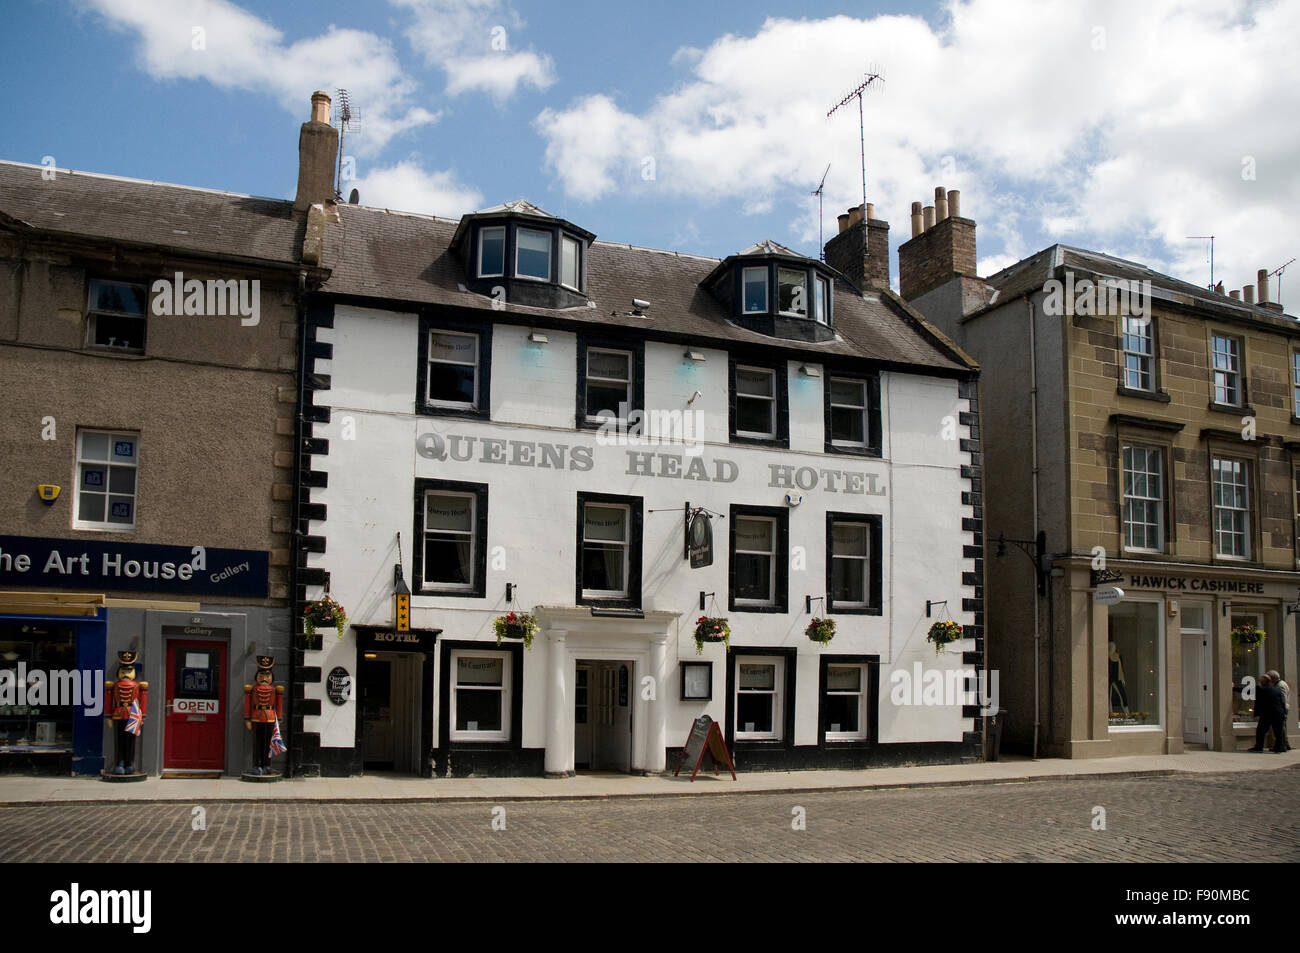 Queens Head Hotel, Bridge Street, Kelso, Roxburghshire, Scotland - Stock Image